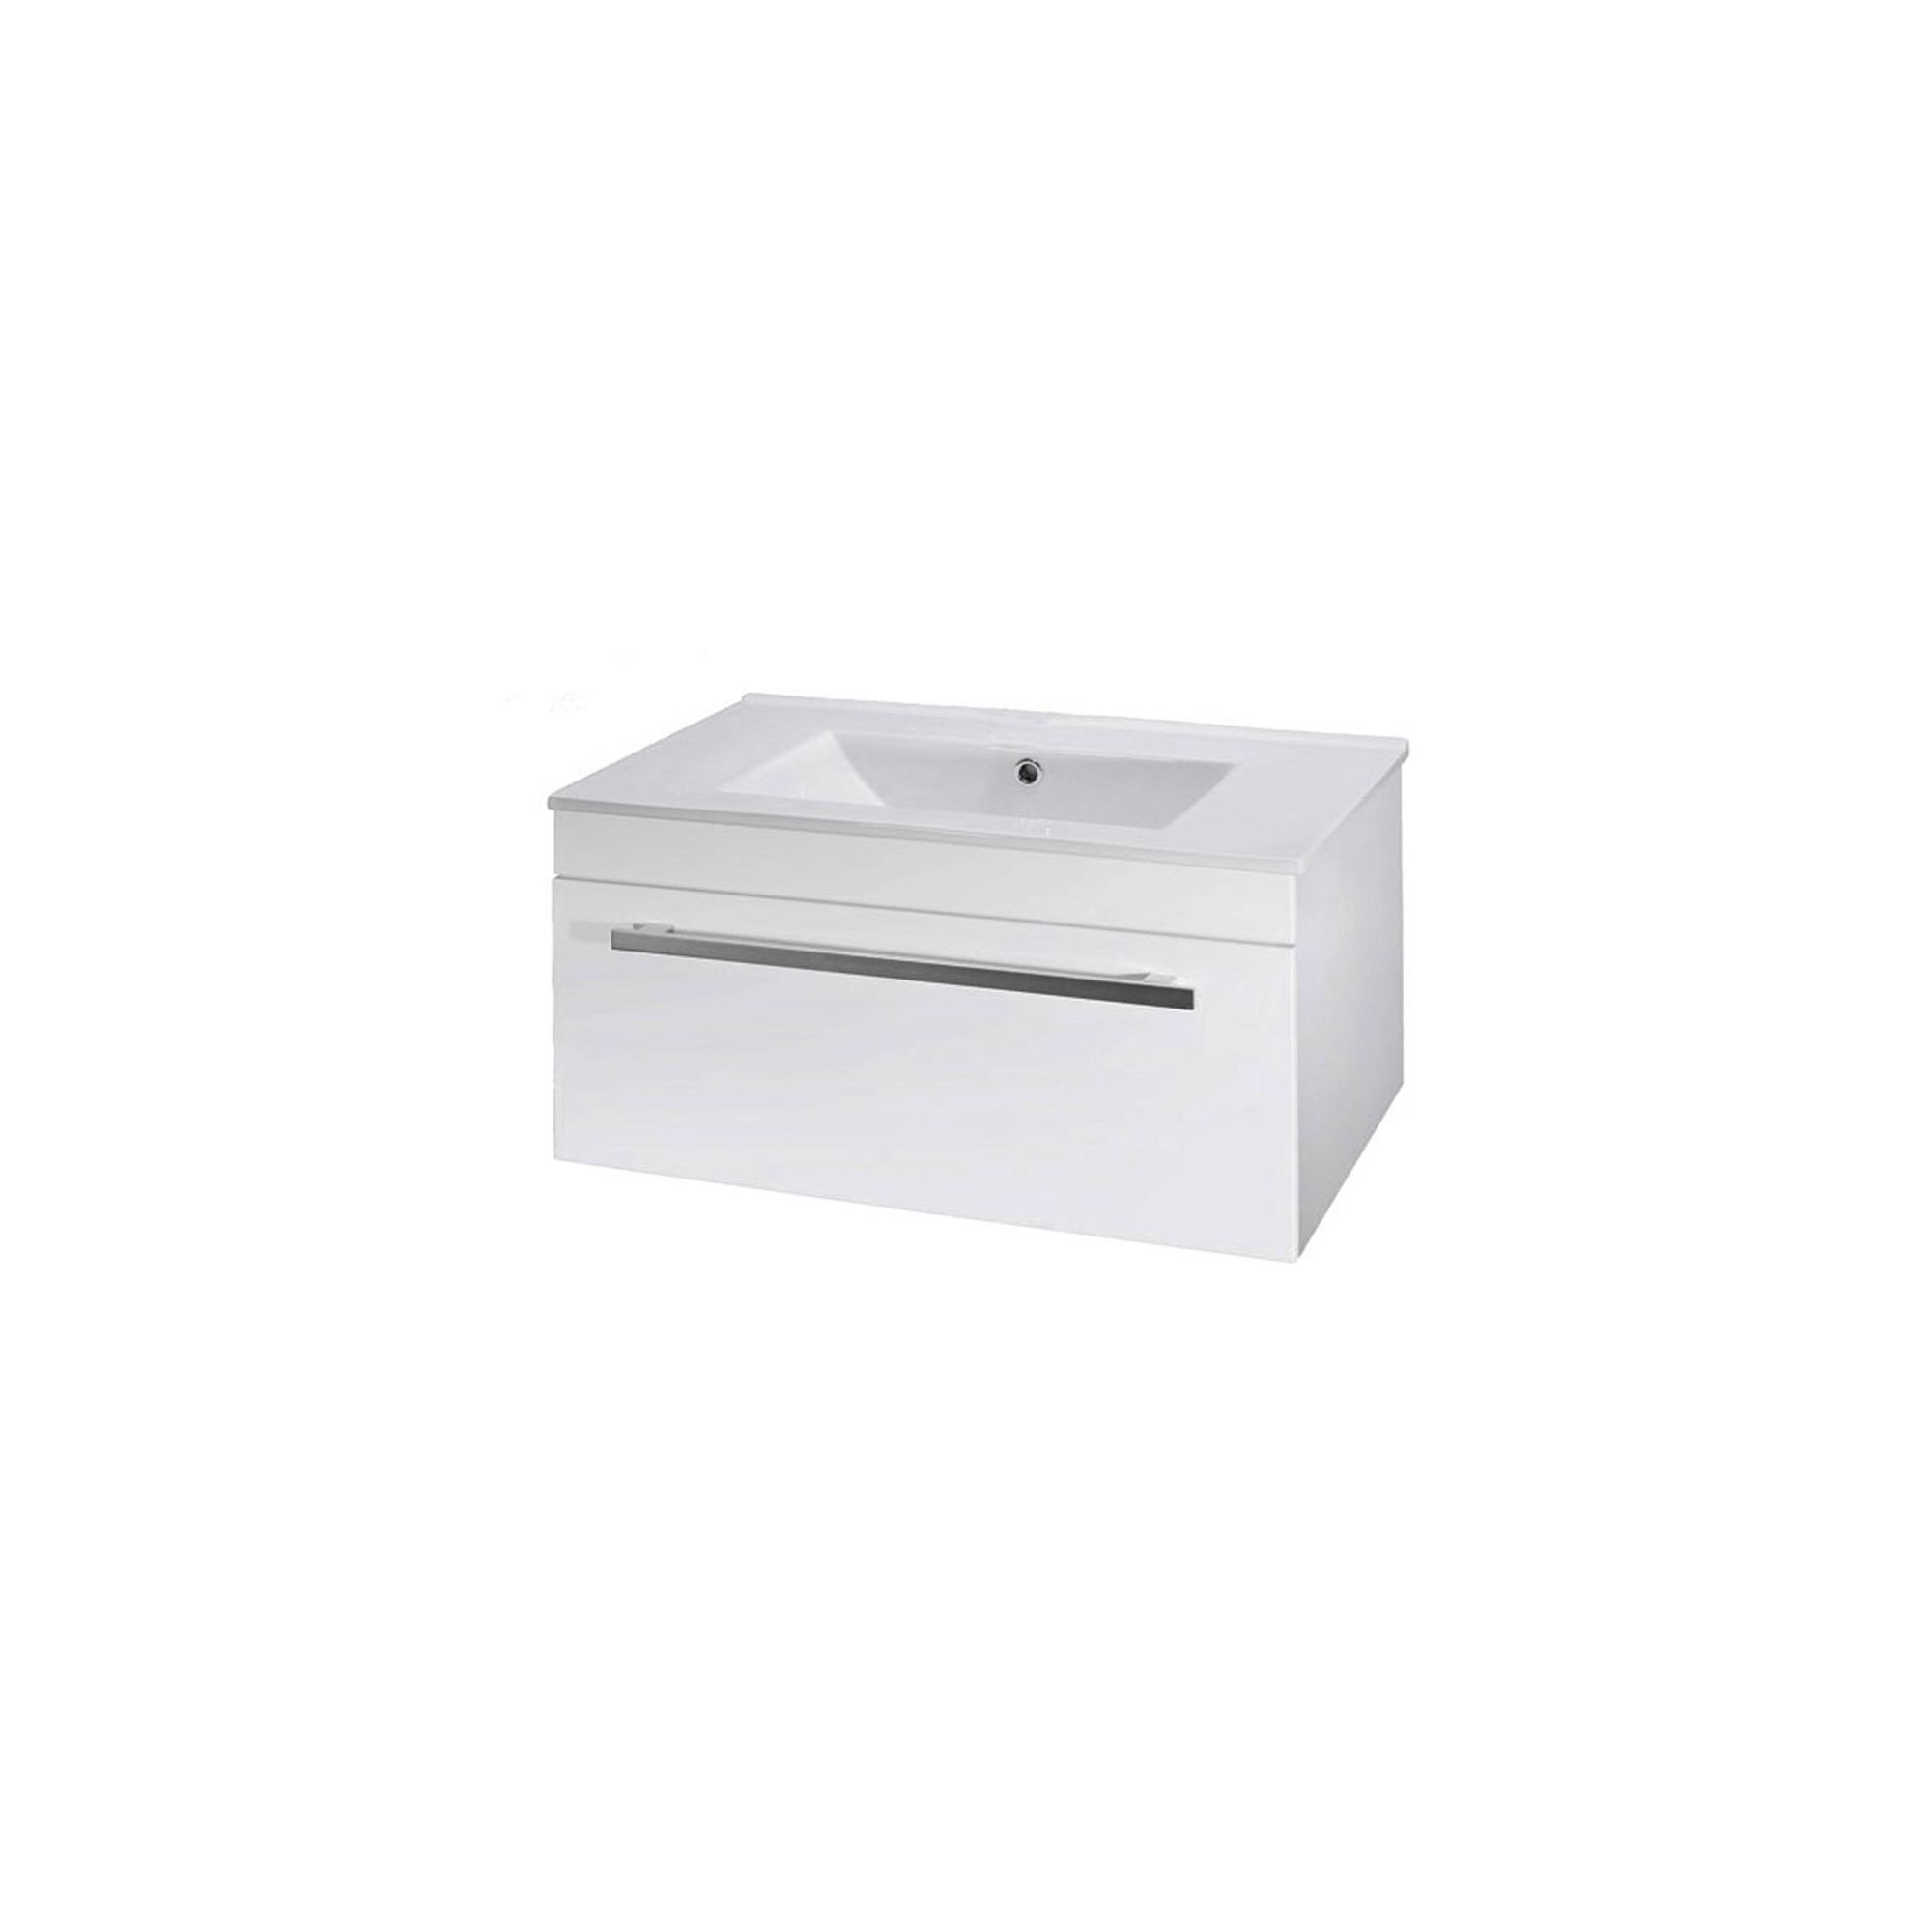 Premier Minimalist Wall Mounted Basin Vanity Unit White 600mm